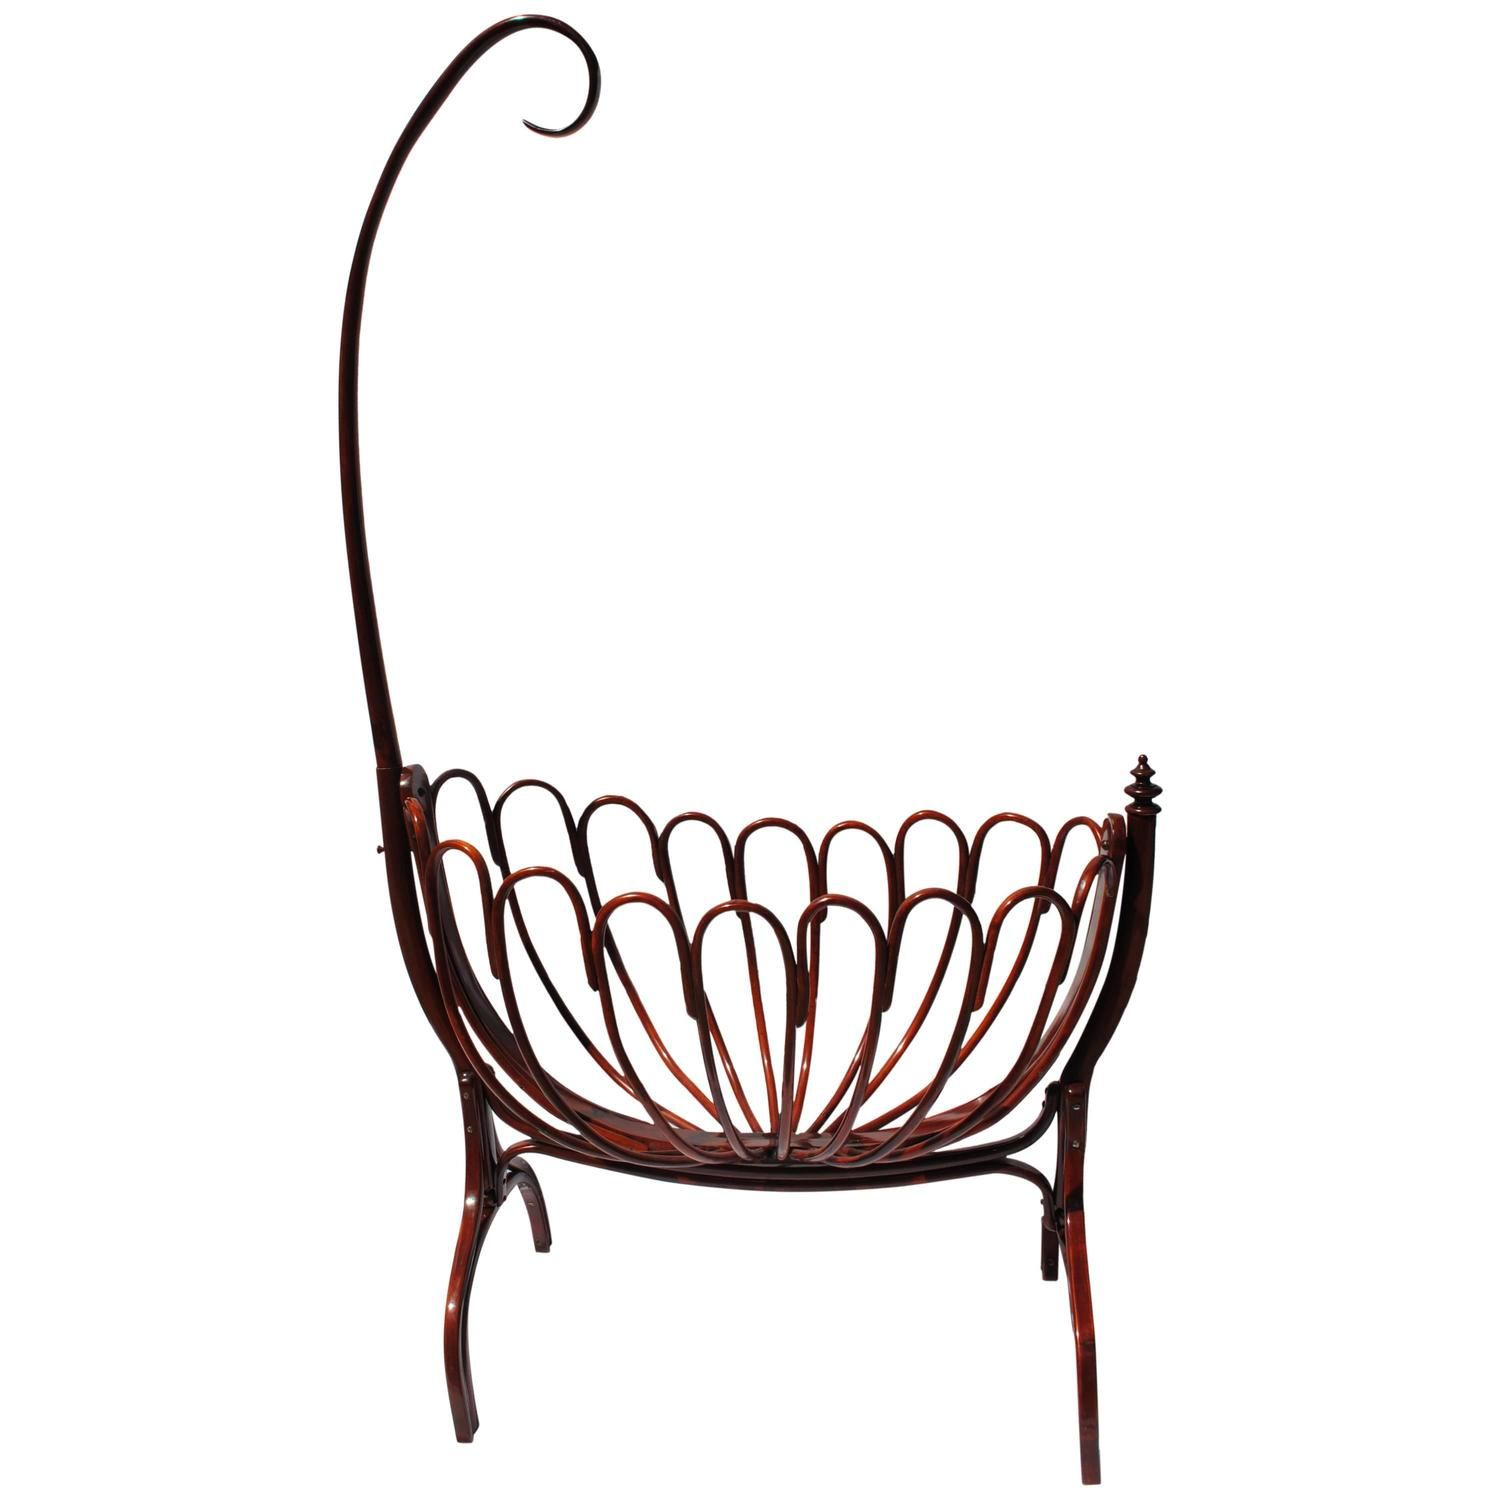 Antique thonet bentwood chair - Explore Children Furniture Vintage Children And More Rare Viennese Thonet Antique Bentwood